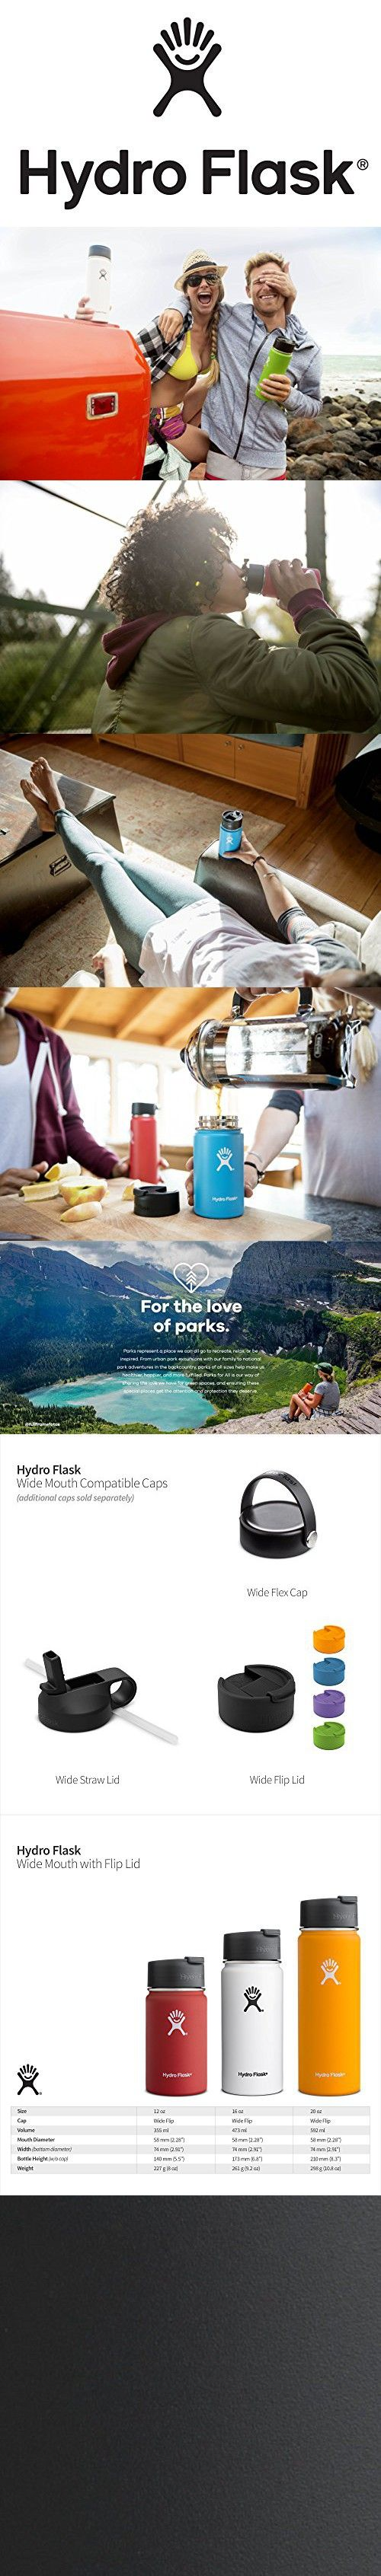 Hydro Flask 20 oz Double Wall Vacuum Insulated Stainless Steel Water Bottle / Travel Coffee Mug, Wide Mouth with BPA Free Hydro Flip Cap, Black